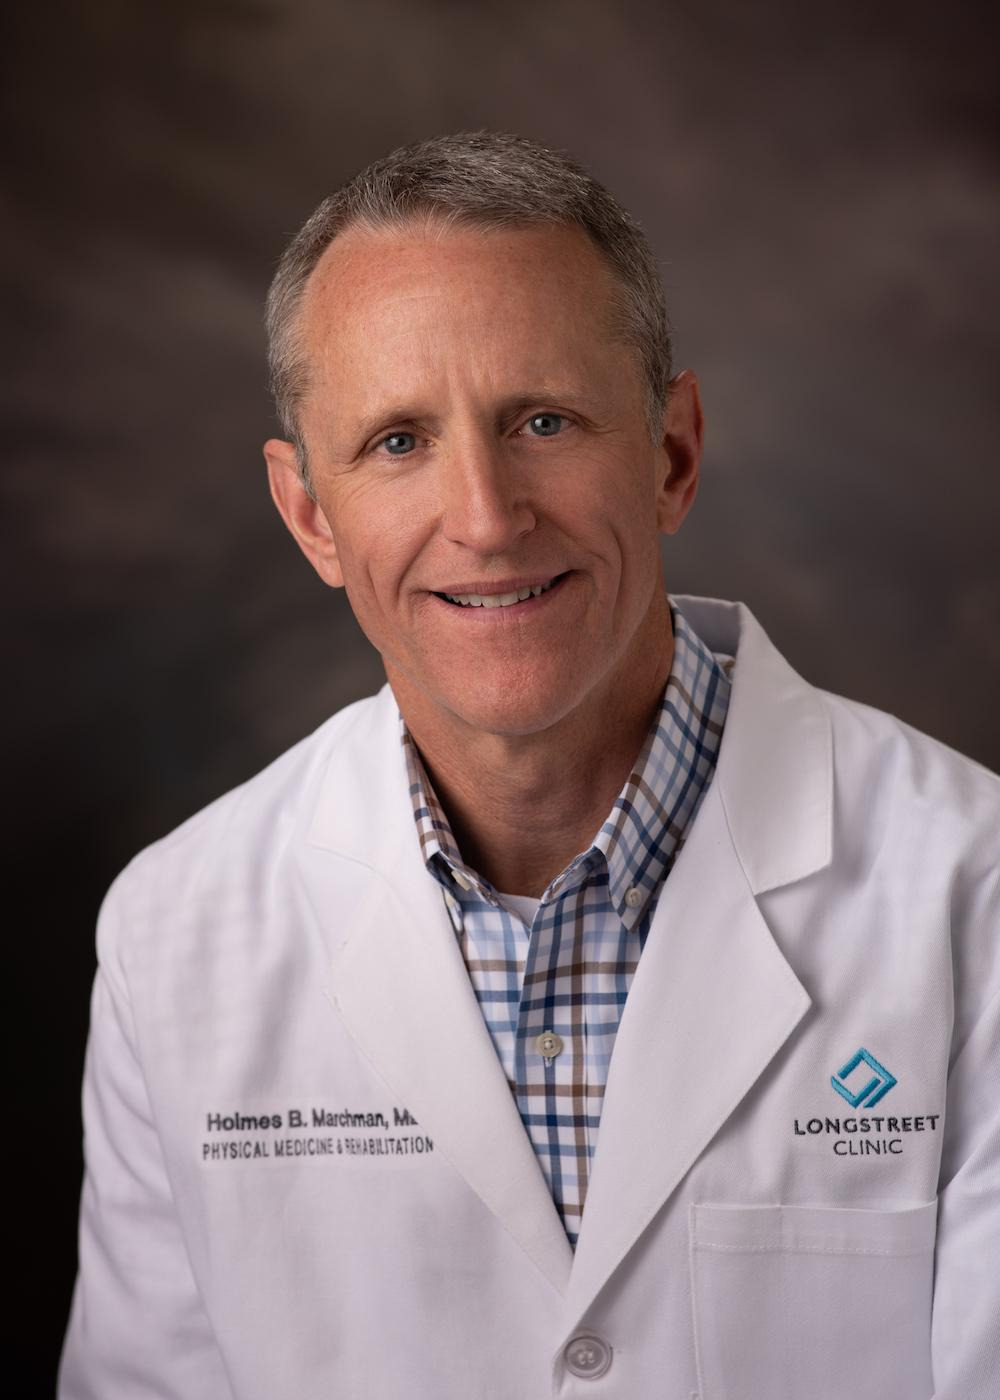 Dr. Marchman